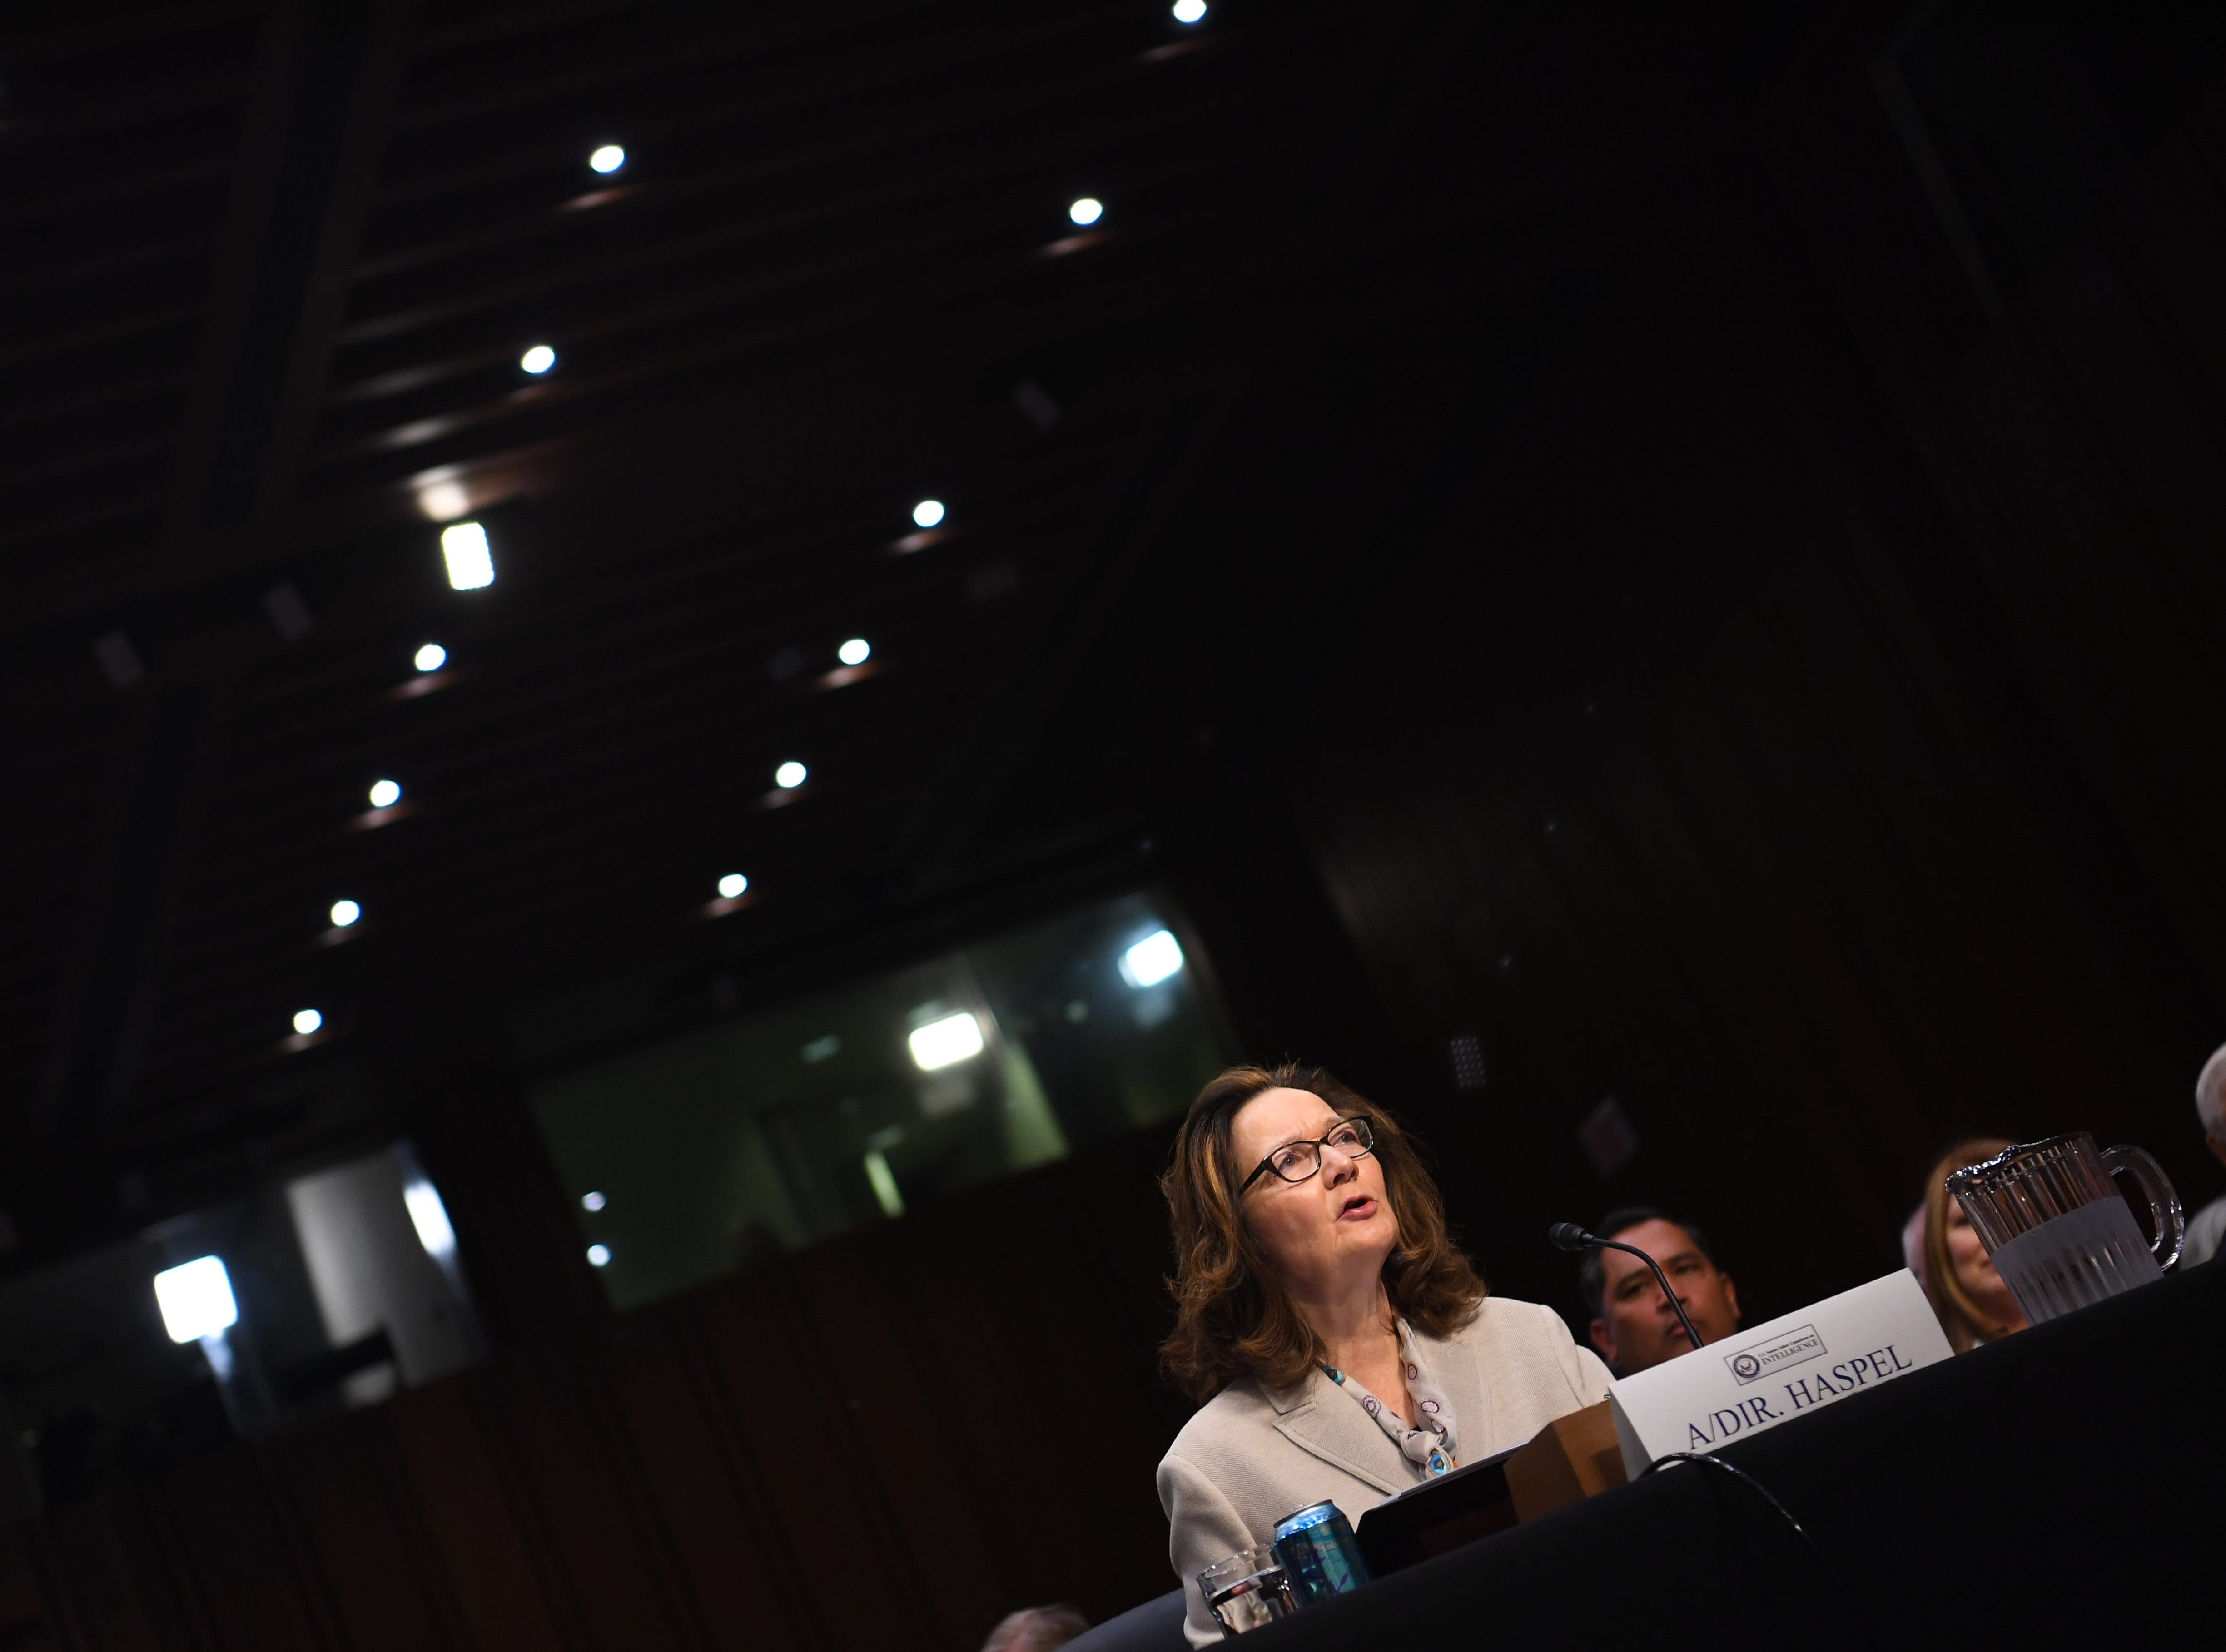 May 9, 2018: Gina Haspel testifies in front of the U.S. Senate Select Committee on Intelligence during her confirmation hearing in Washington. On March 13, 2018 President Trump nominated Haspel to be CIA Director, replacing Mike Pompeo, the current Secretary of State.